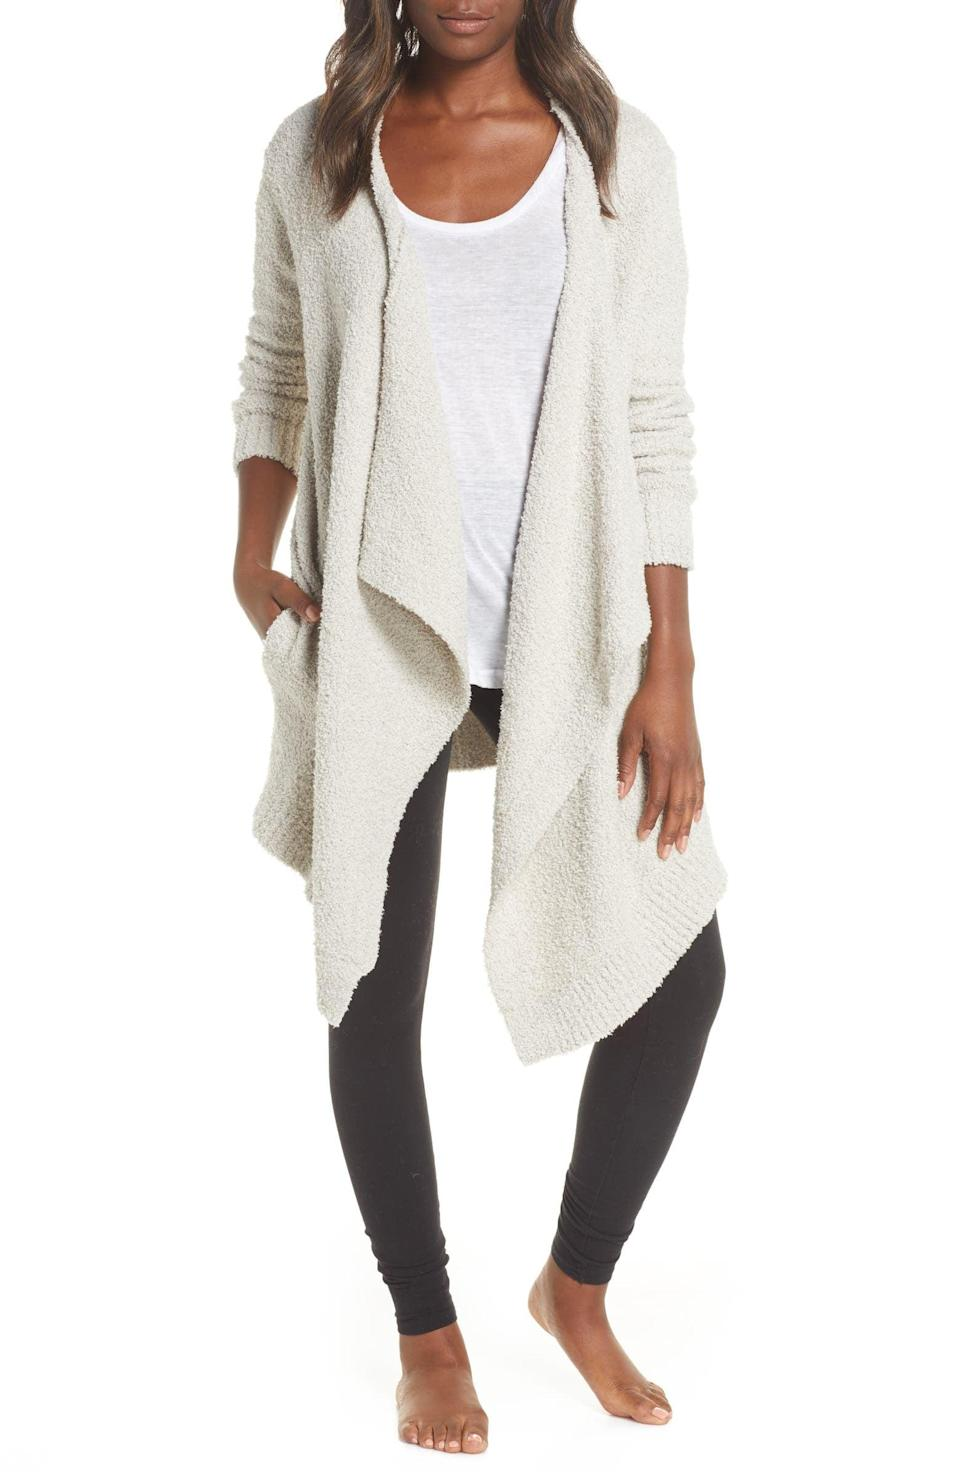 <p>From brisk mornings to evening chills, the <span>Ugg Phoebe Wrap Cardigan</span> ($118) will be something they use all the time to stay warm. They can layer this on top of any outfit for a cozy and comfy vibe. It comes in a variety of prints and colors including, indigo, snow leopard, grey, and cream.</p>